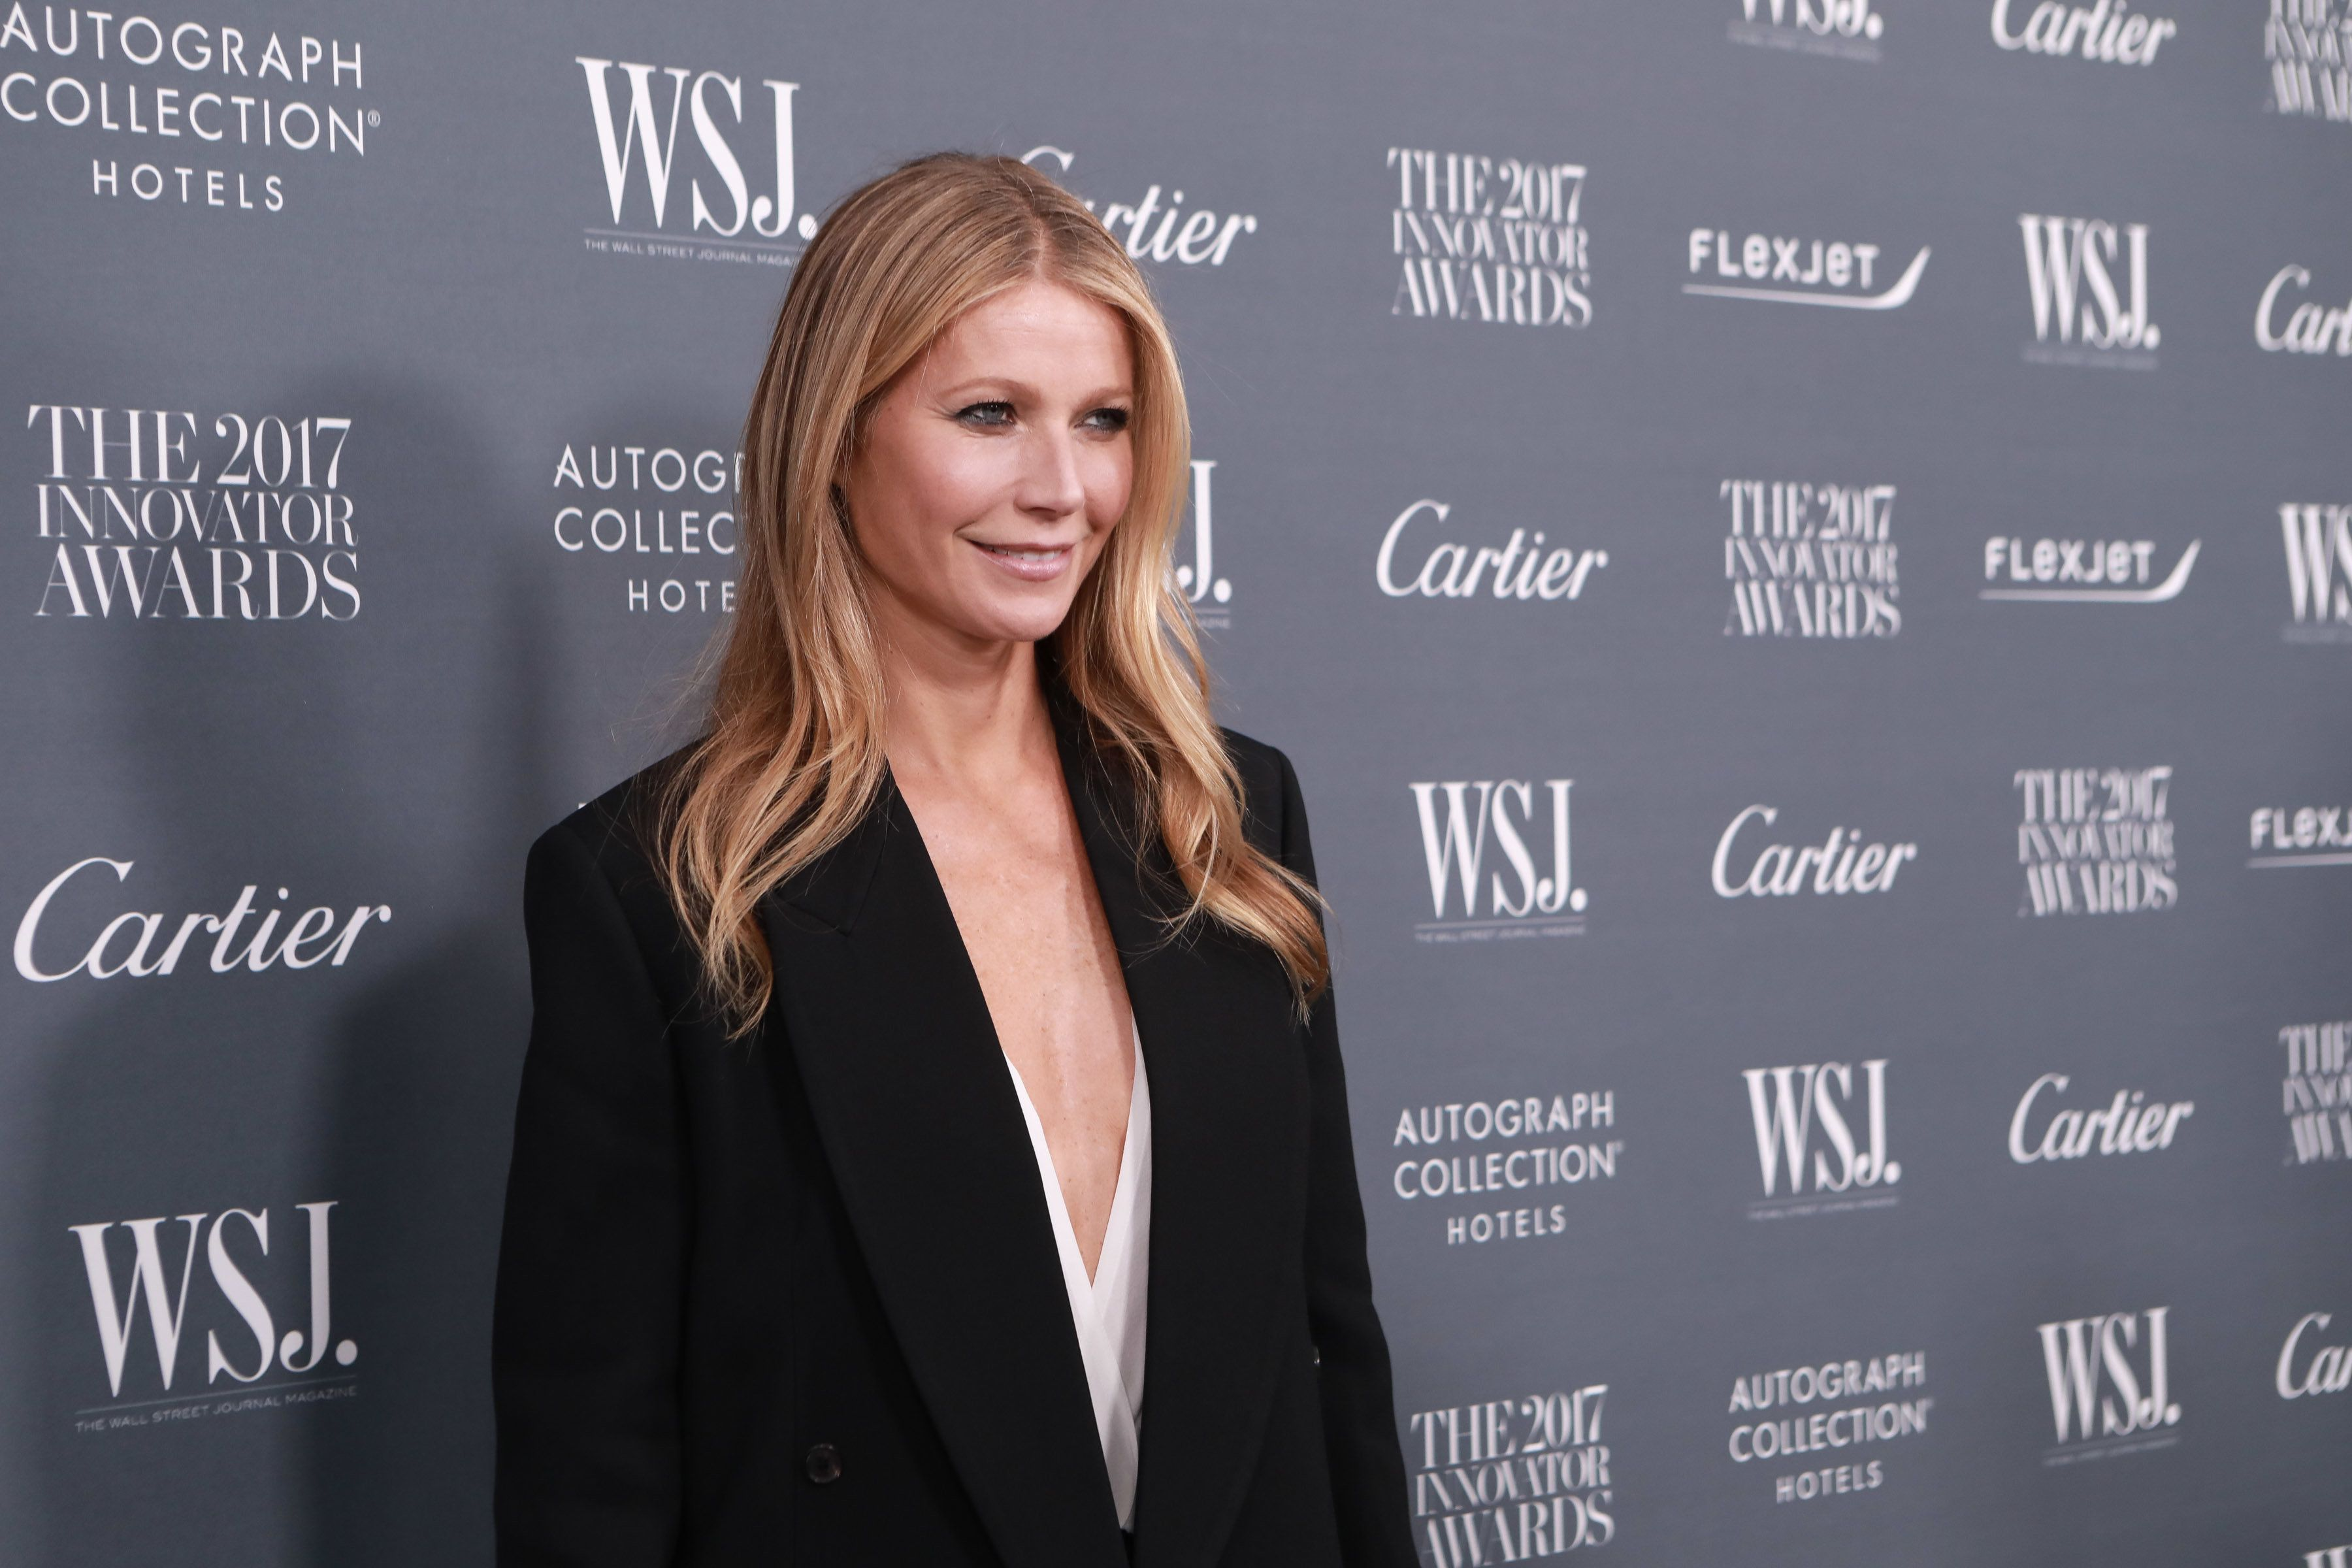 NEW YORK, NY - NOVEMBER 01:  Gwyneth Paltrow during the WSJ Magazine 2017 Innovator Awards  at Museum of Modern Art on November 1, 2017 in New York City.  (Photo by Gonzalo Marroquin/Patrick McMullan via Getty Images)